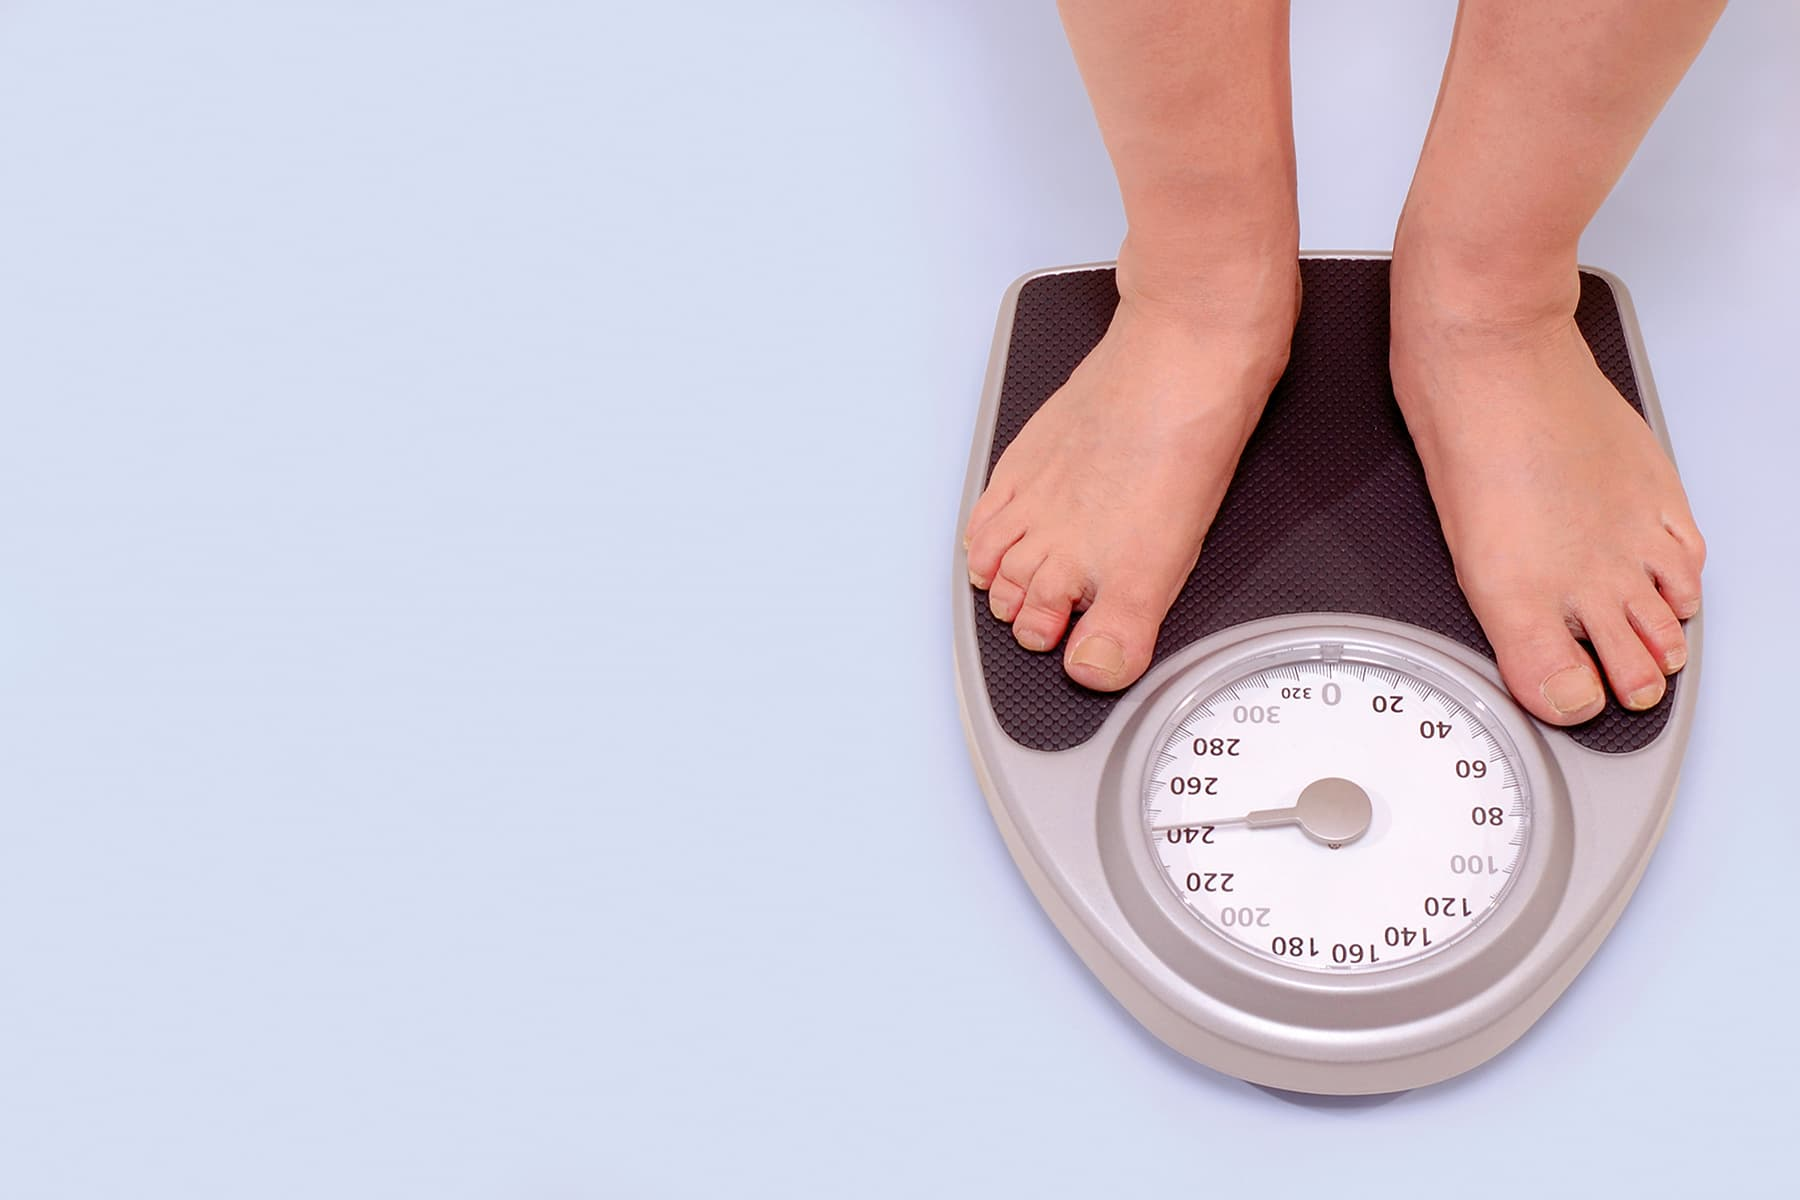 Quick Weight Loss Tips To Help You In Your Fight Against Fat